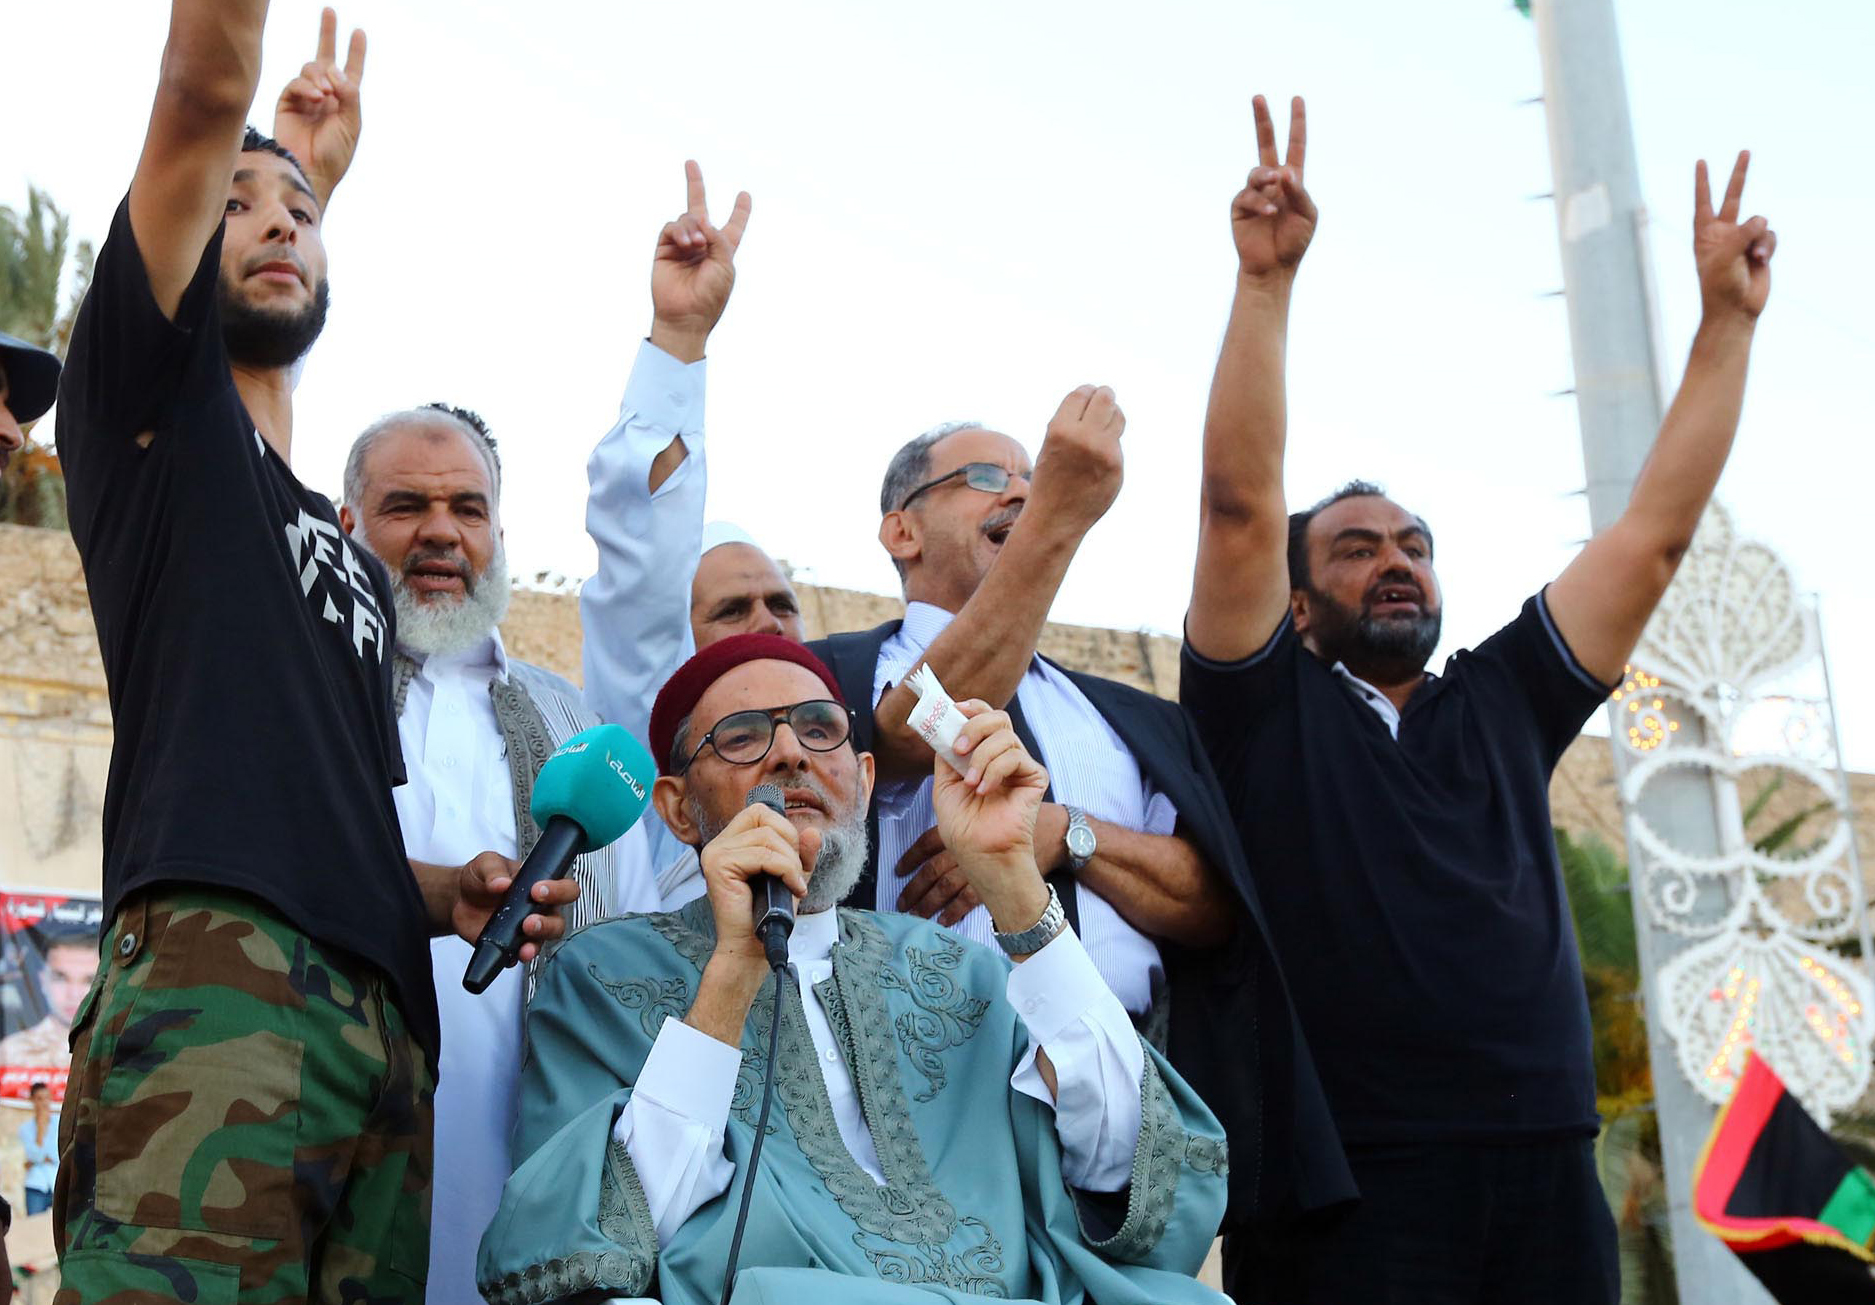 Libyan Grand Mufti Sheikh Sadiq al-Gharianni (C) speaks as others flash the sign for victory during a rally in central Tripoli's Martyr's Square in 2014 (AFP)